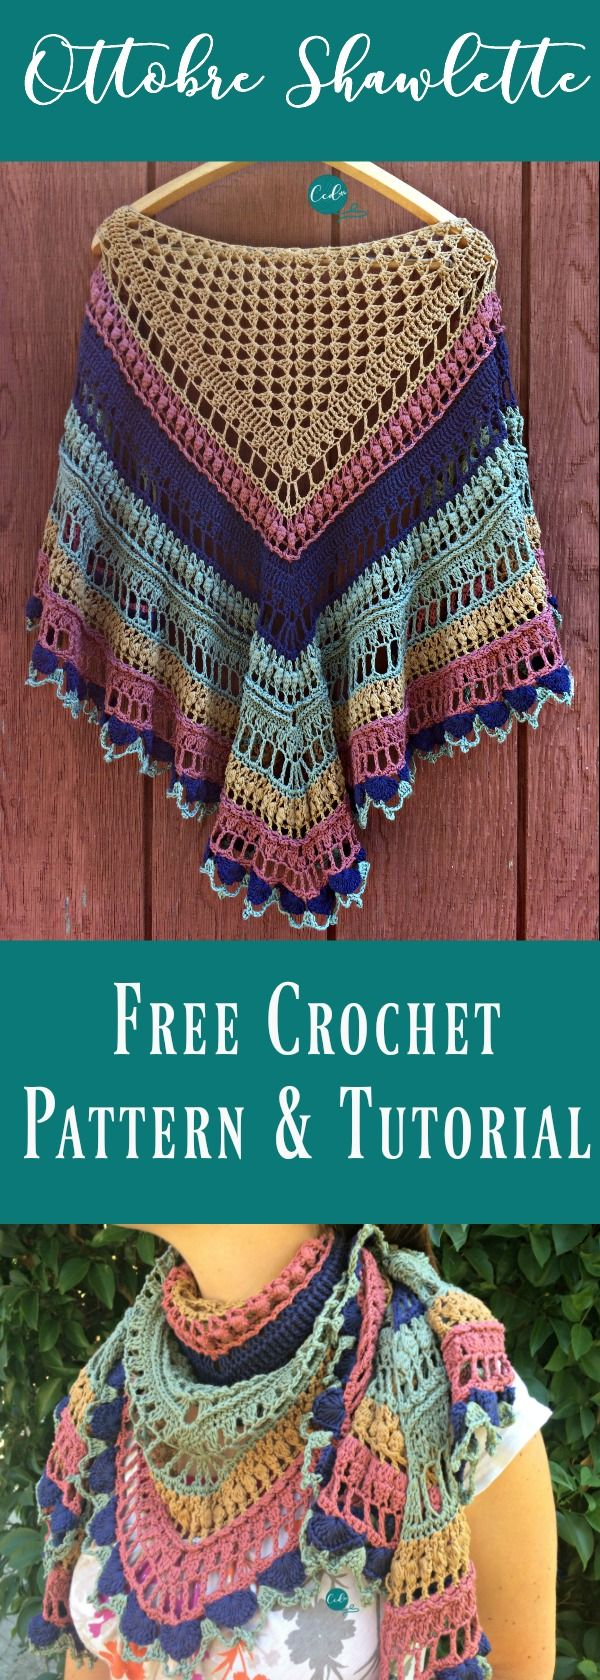 Ottobre Shawlette Free Crochet Pattern and Tutorial | Dreieckstuch ...